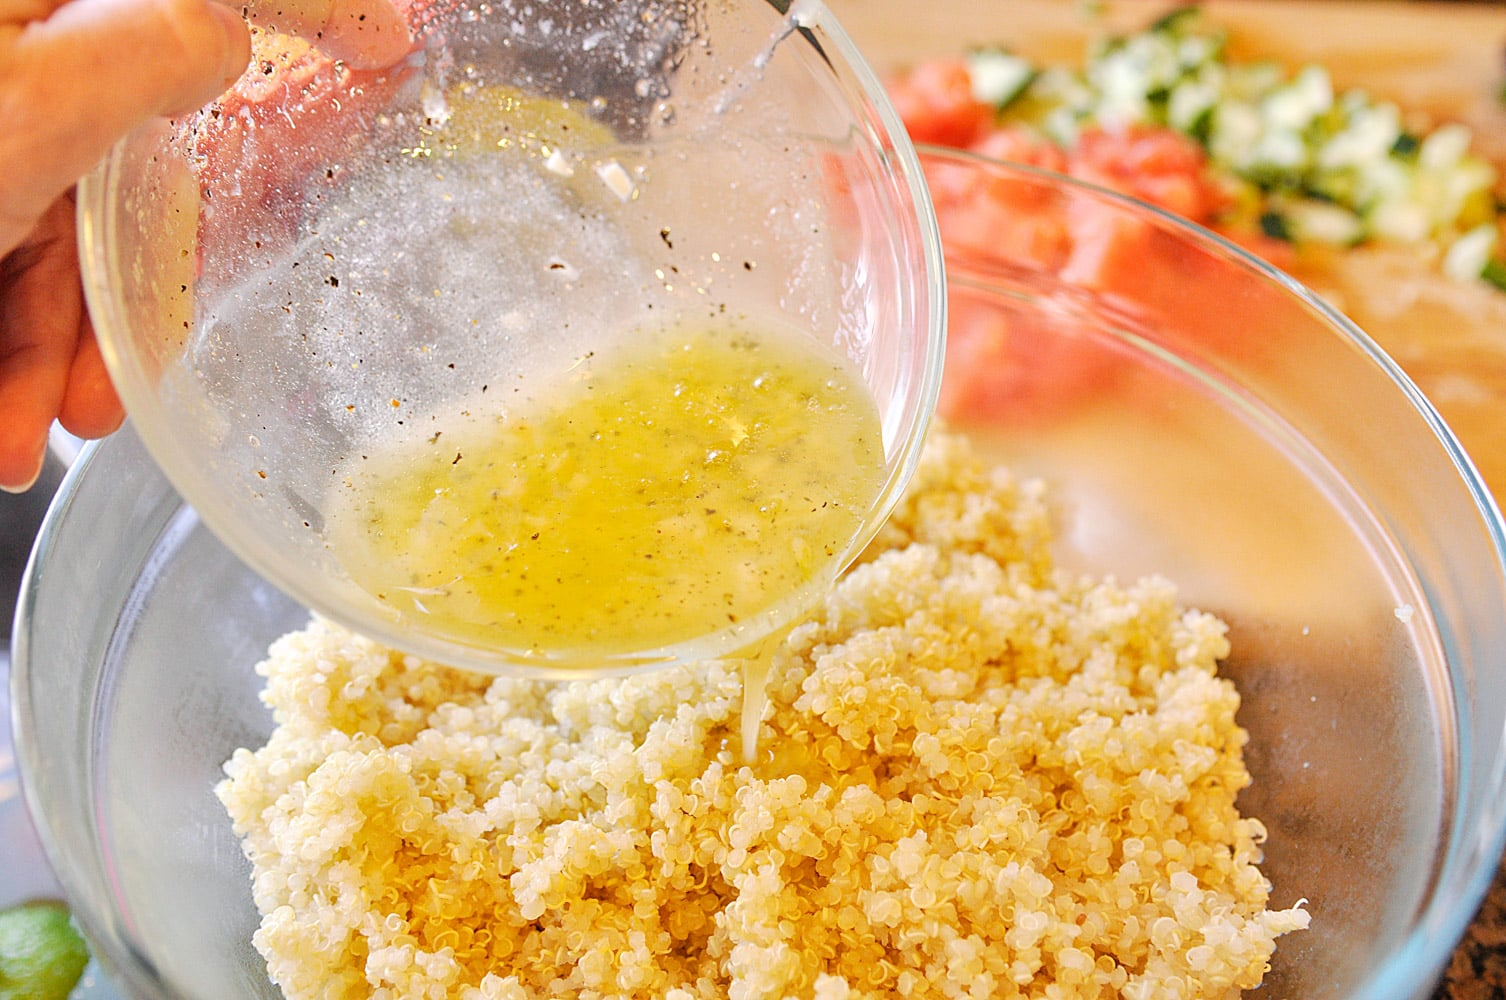 pouring liquid into quinoa